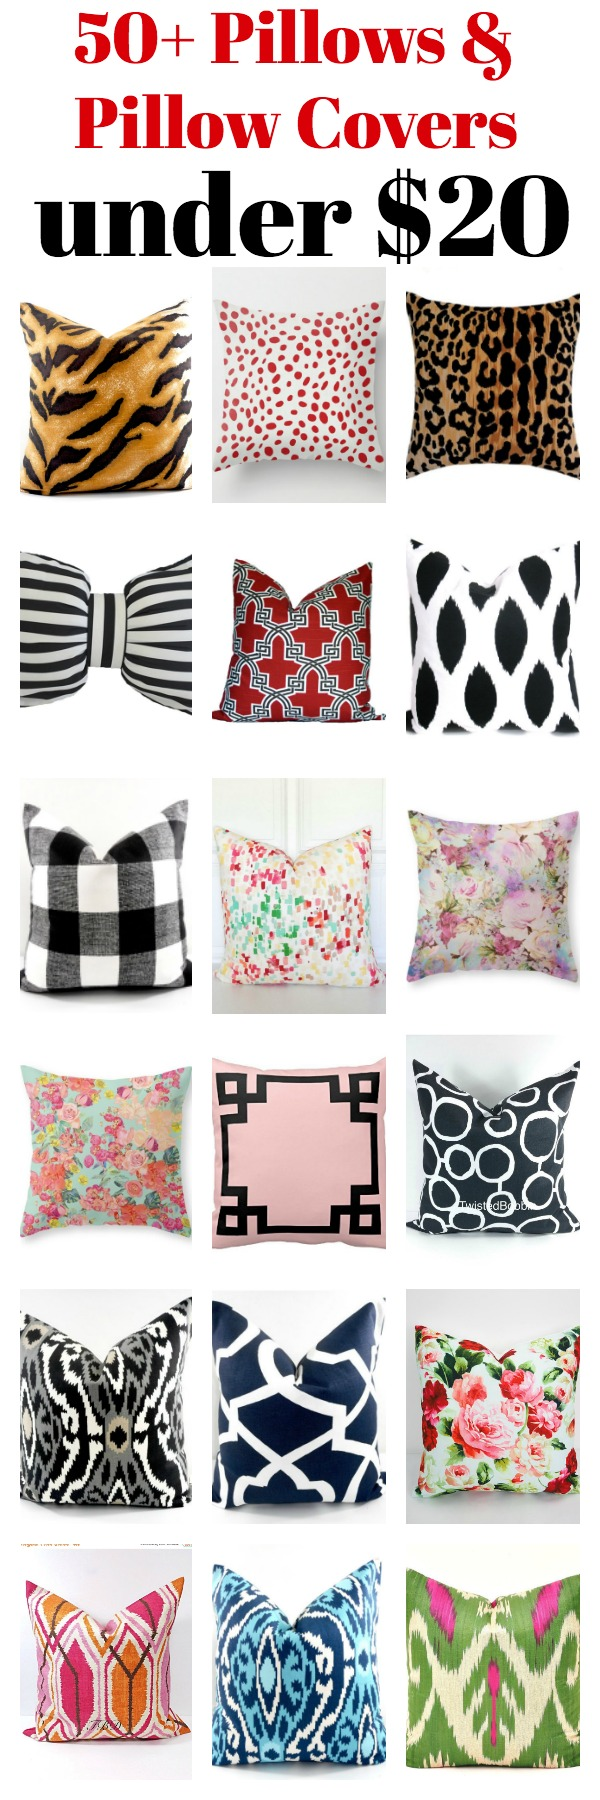 50+ Pillow Covers and Pillows under $20 - great source for affordable pillows of every color and pattern! Loads of pillow options!